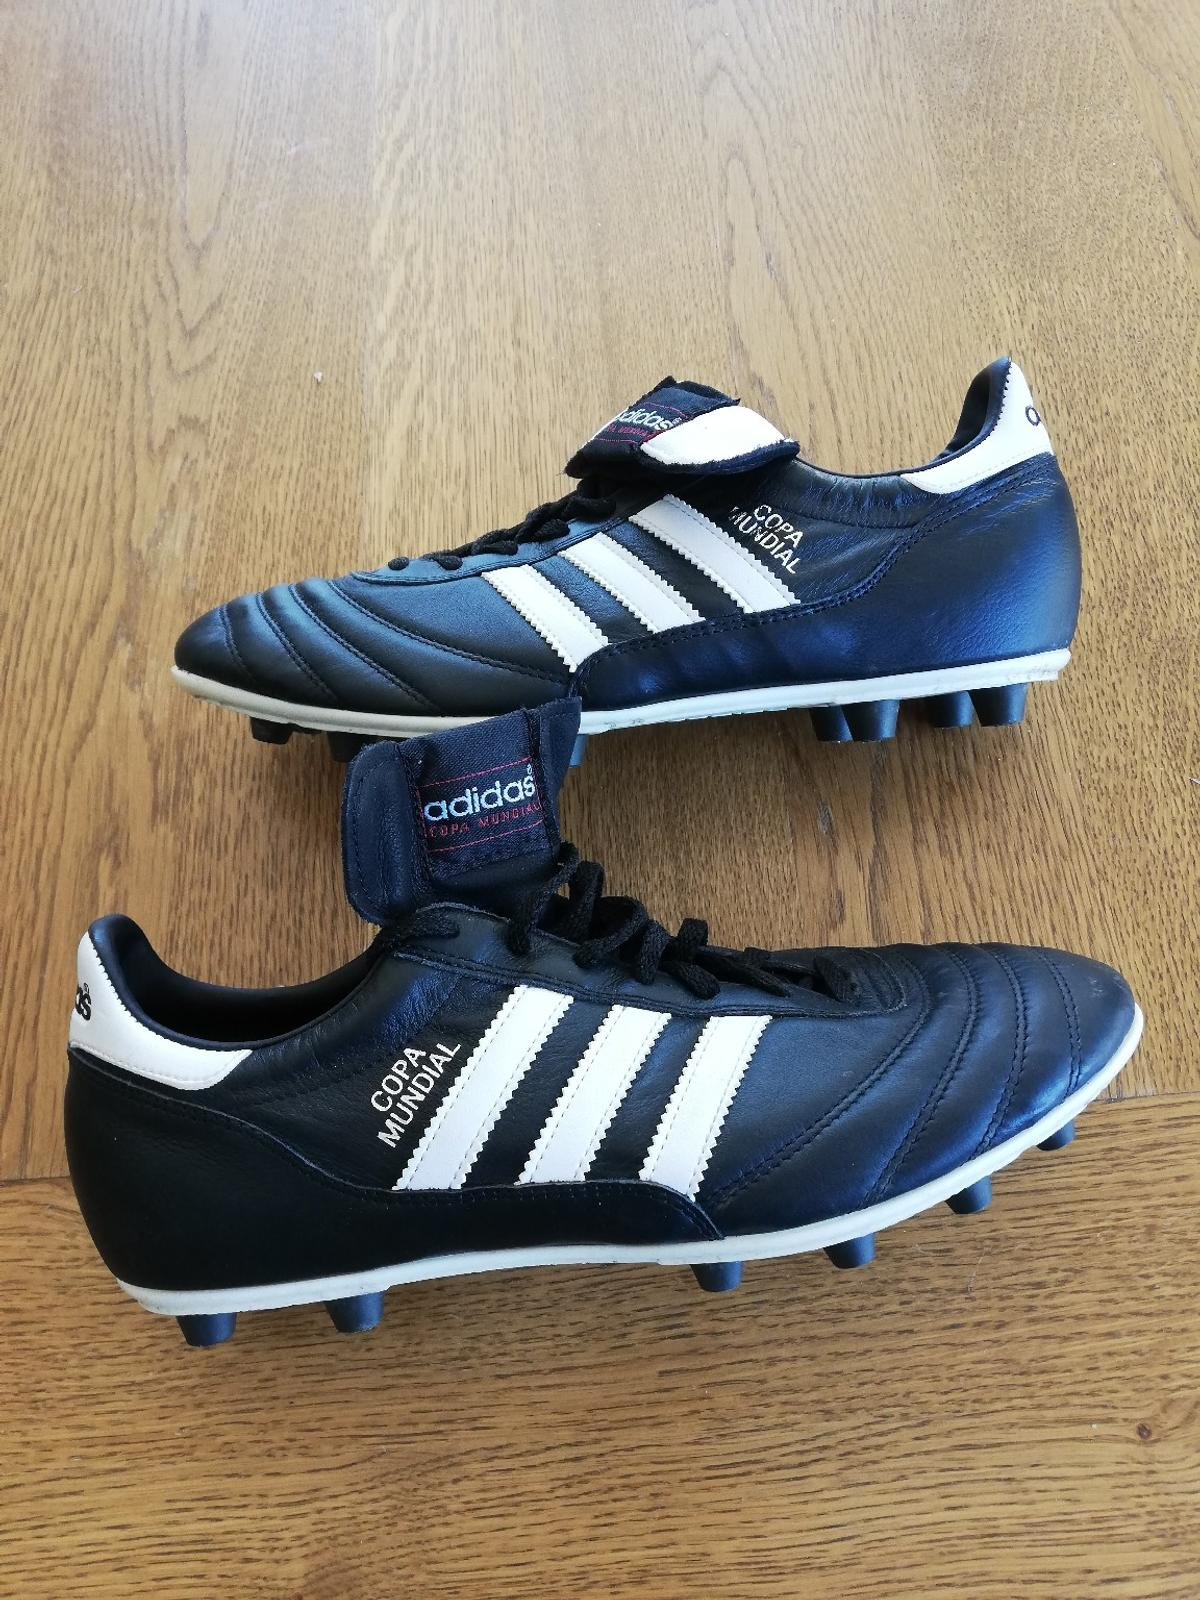 7373c5d418a Adidas Copa Mundial size 9.5 in L40 Chorley for £40.00 for sale - Shpock